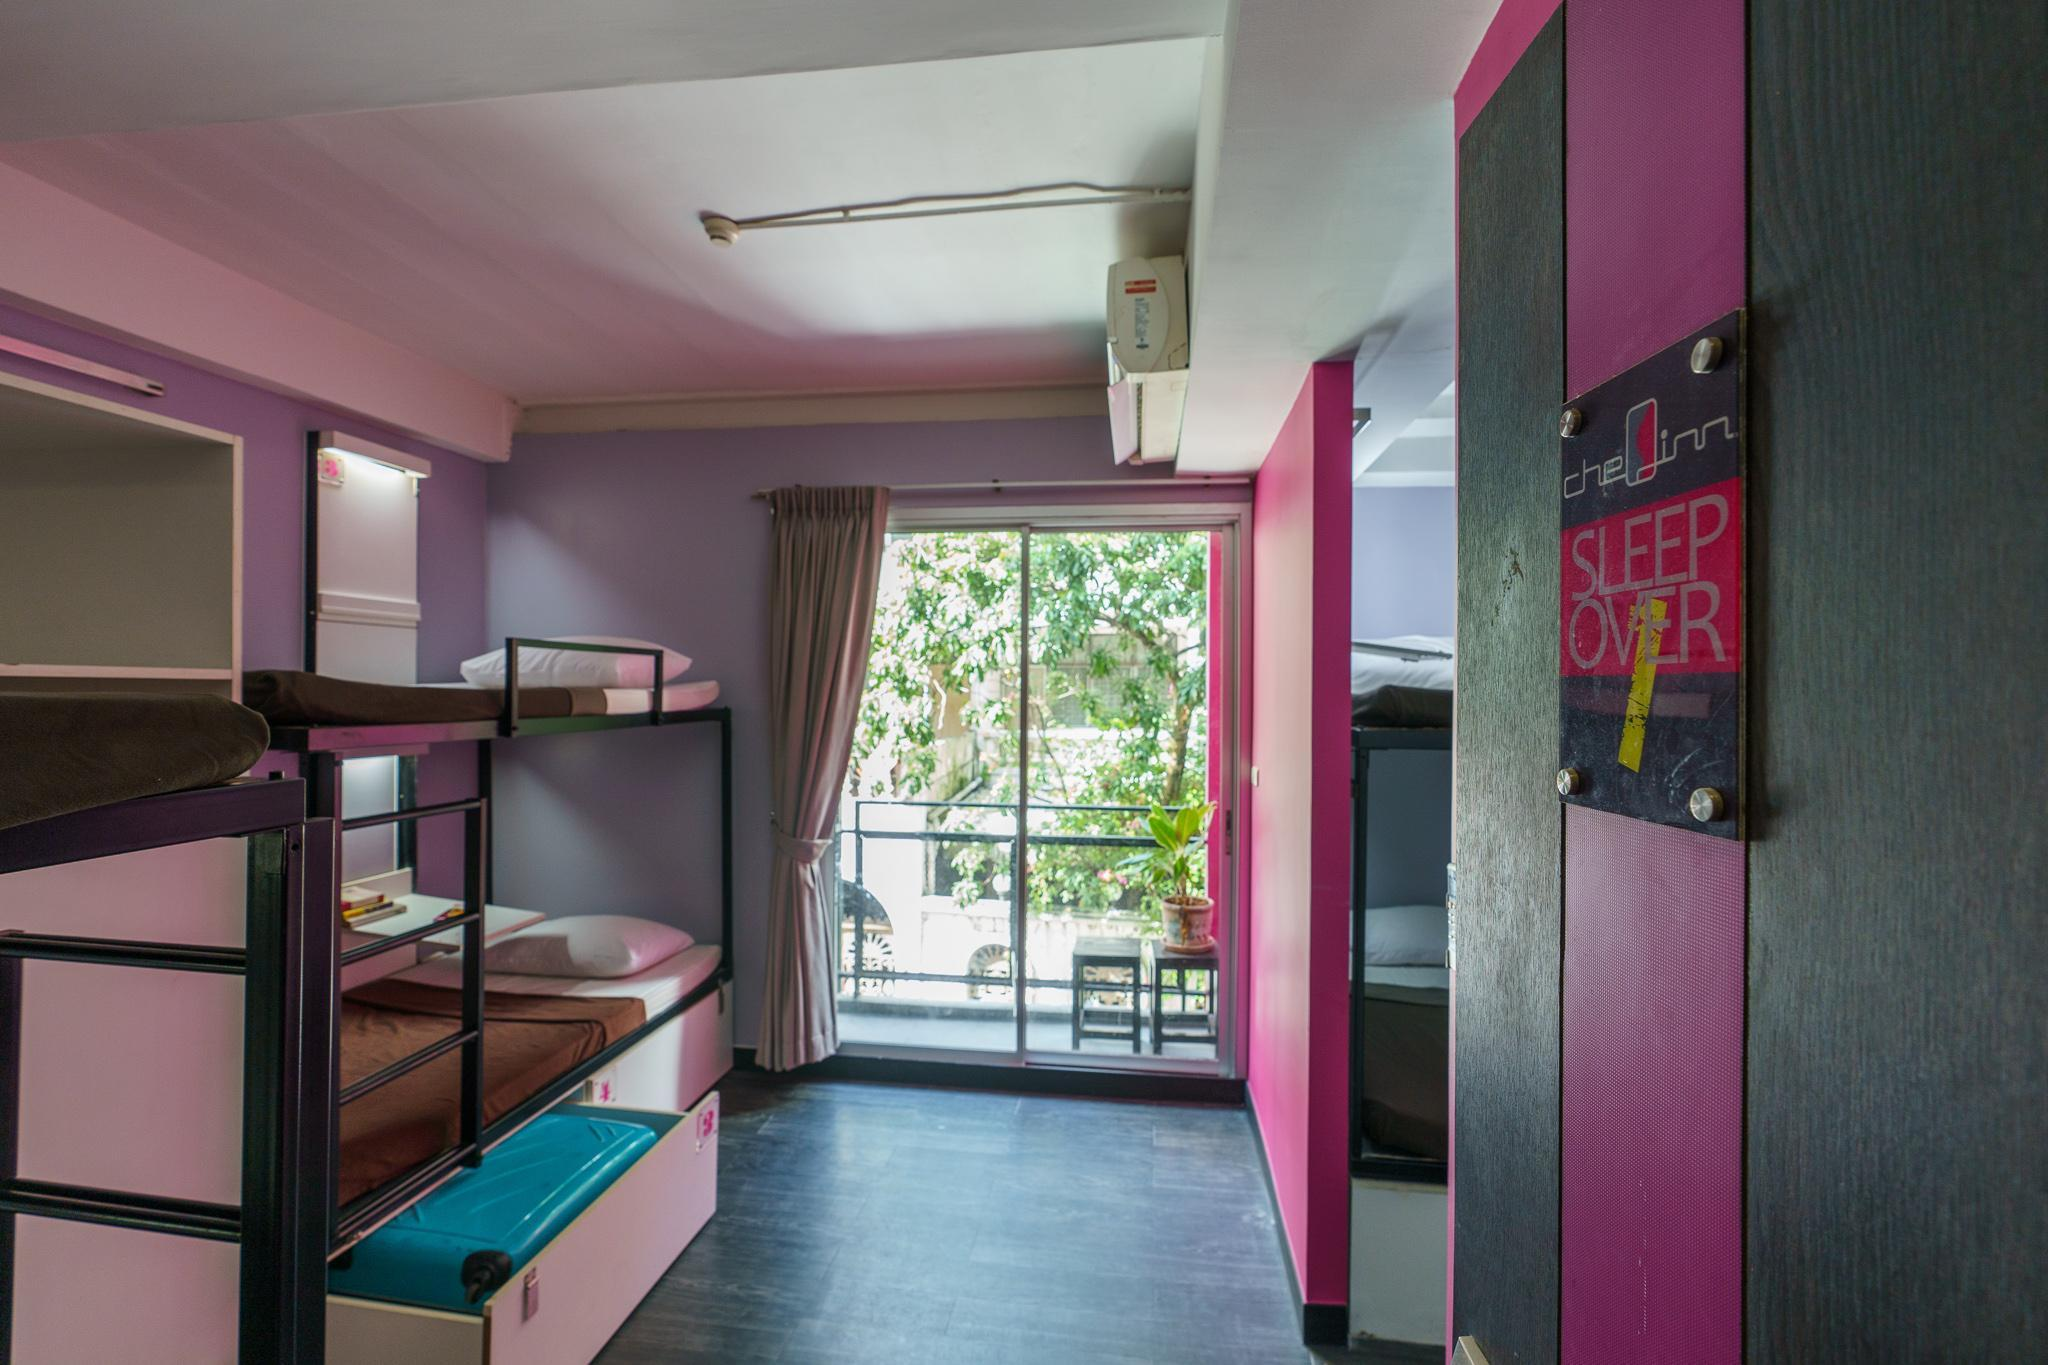 Rum Privat Sovsal (8 vuxna) (Private Dormitory Room (8 Adults))